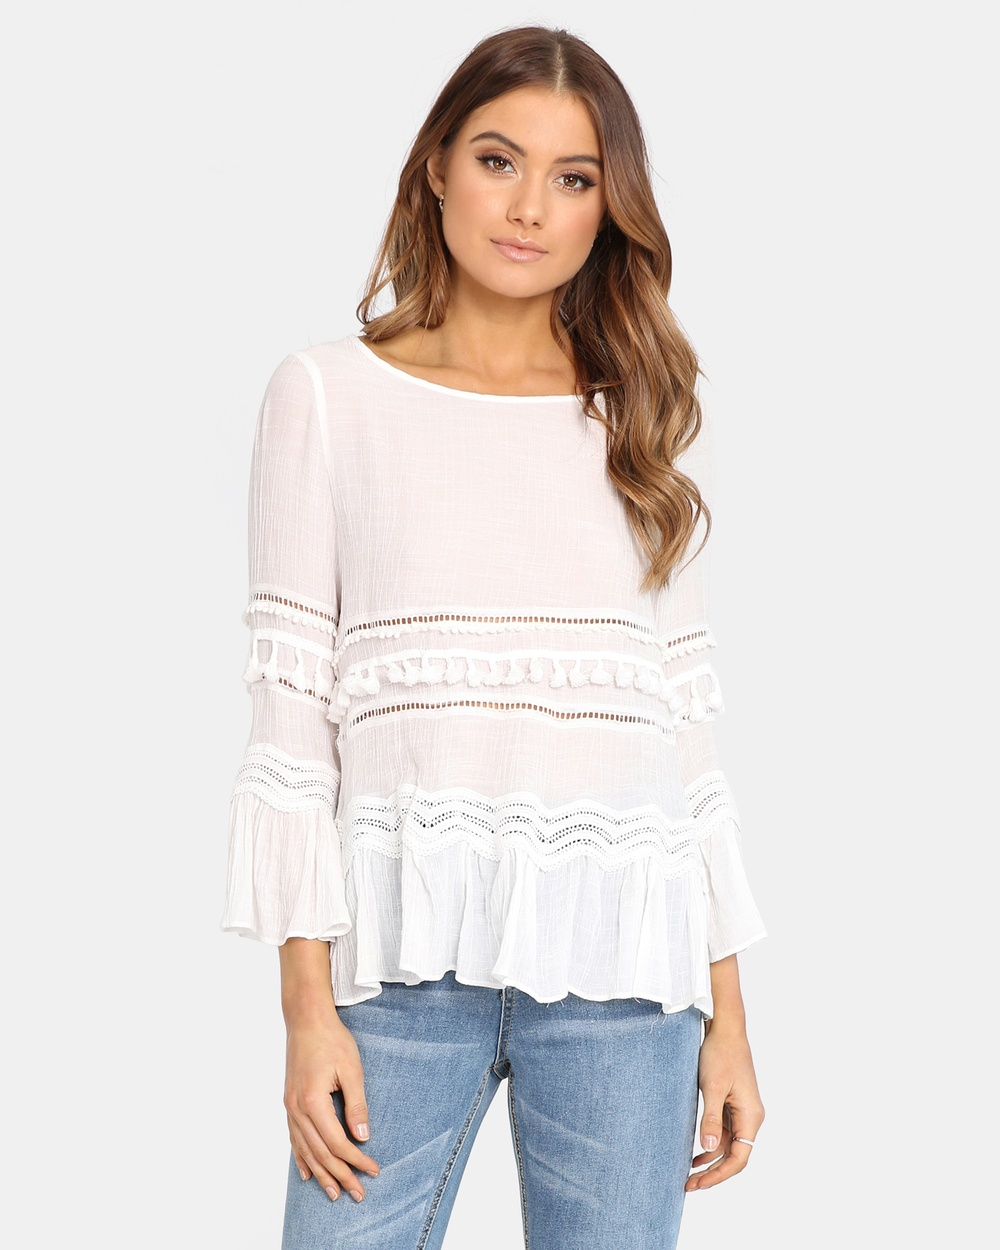 Madison Square Chantelle Top Tops White Chantelle Top